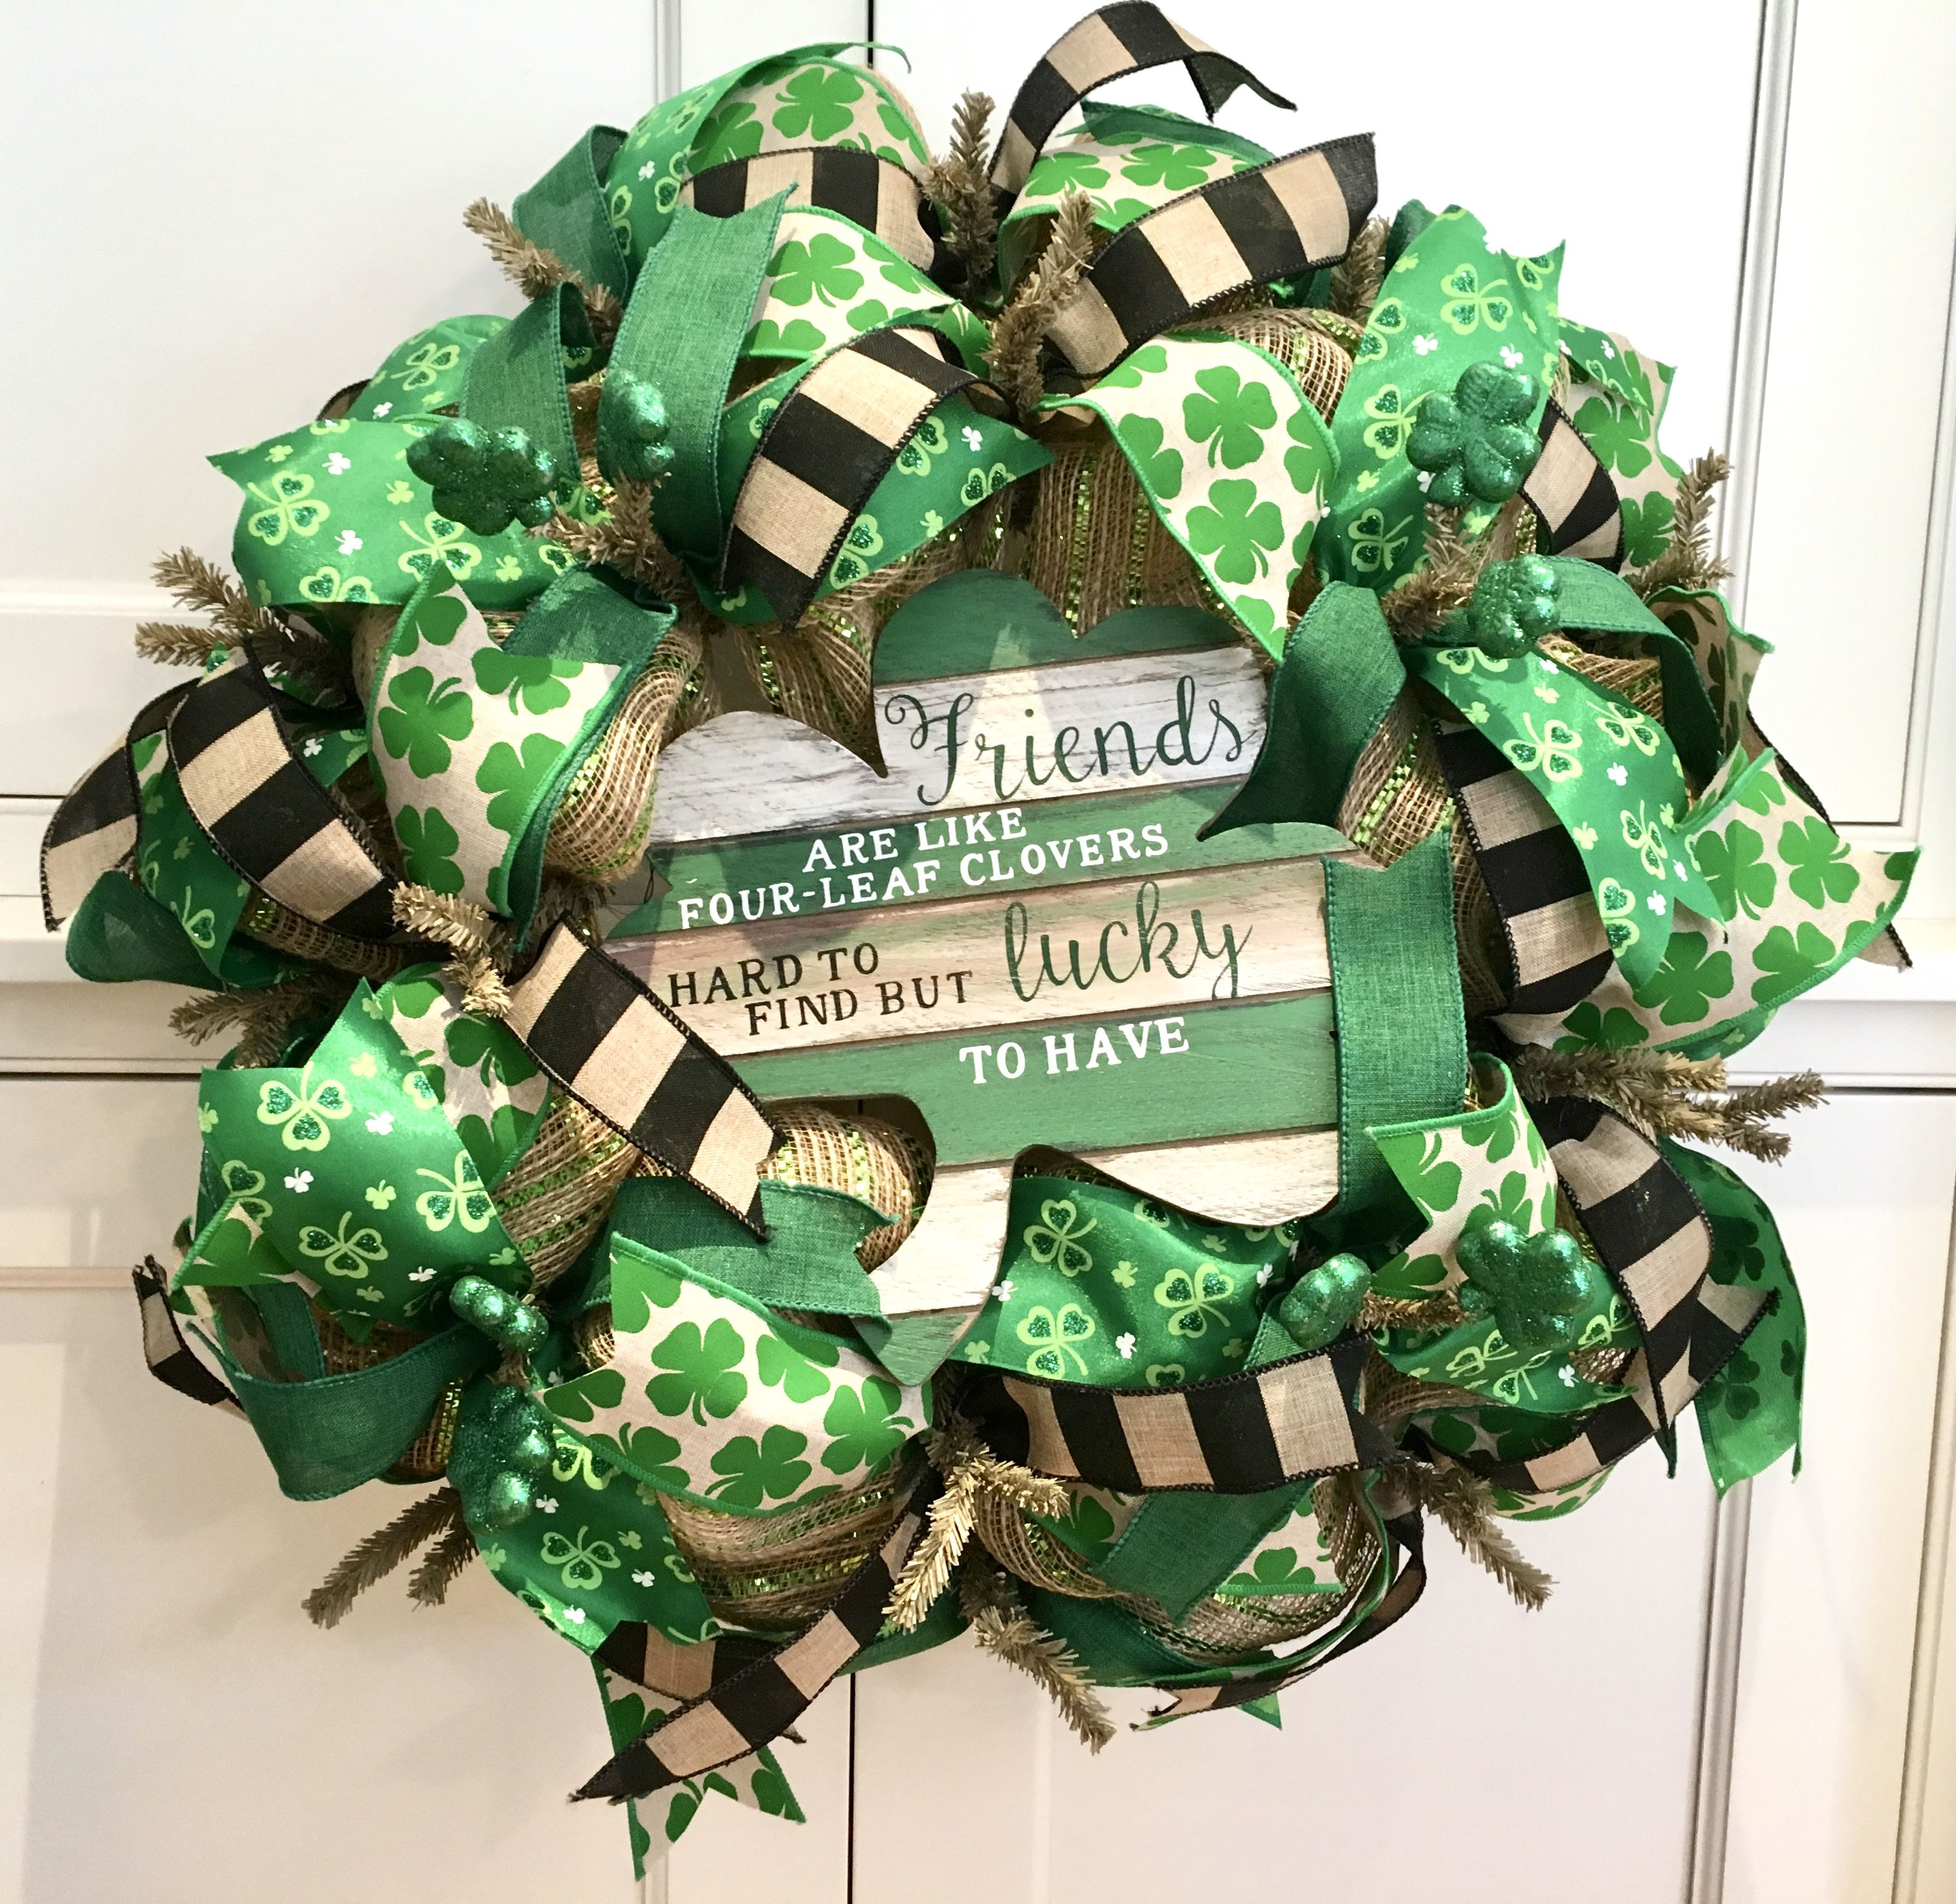 Handmade wreath celebrating St. Patrick's Day! This wreath